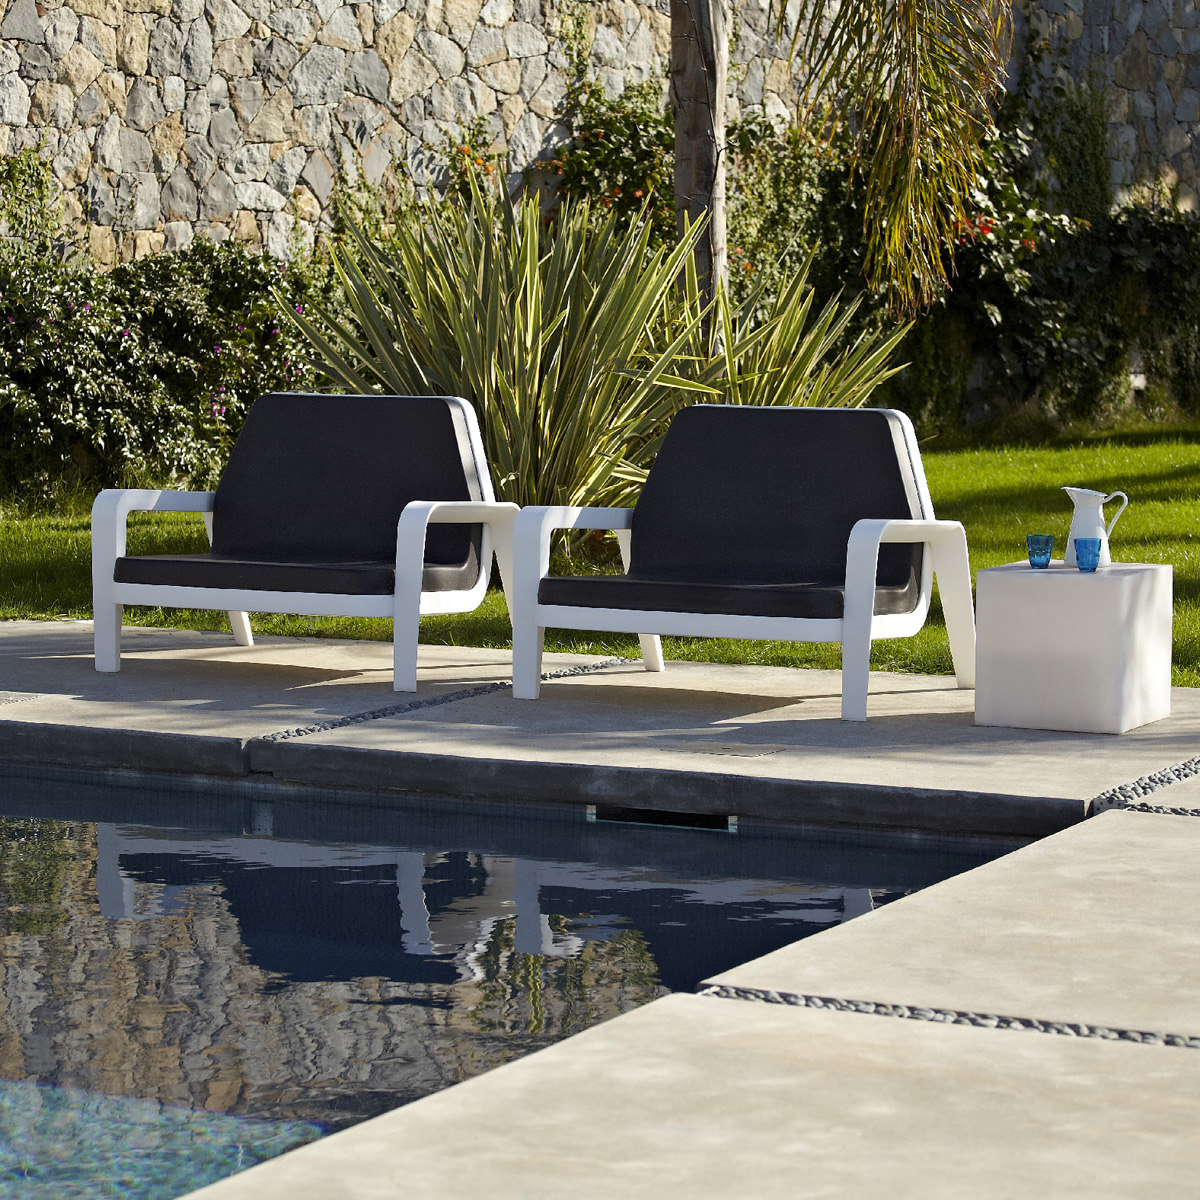 America lounge chair from Slide